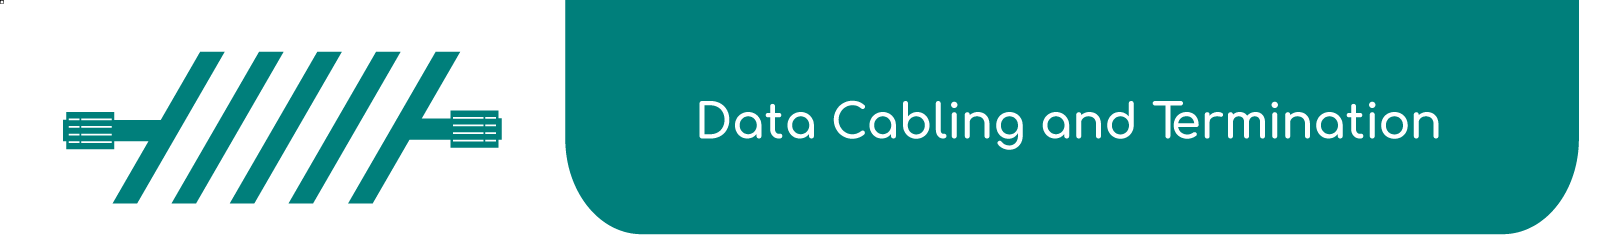 Data Cabling & Termination - Electronic Communication Services